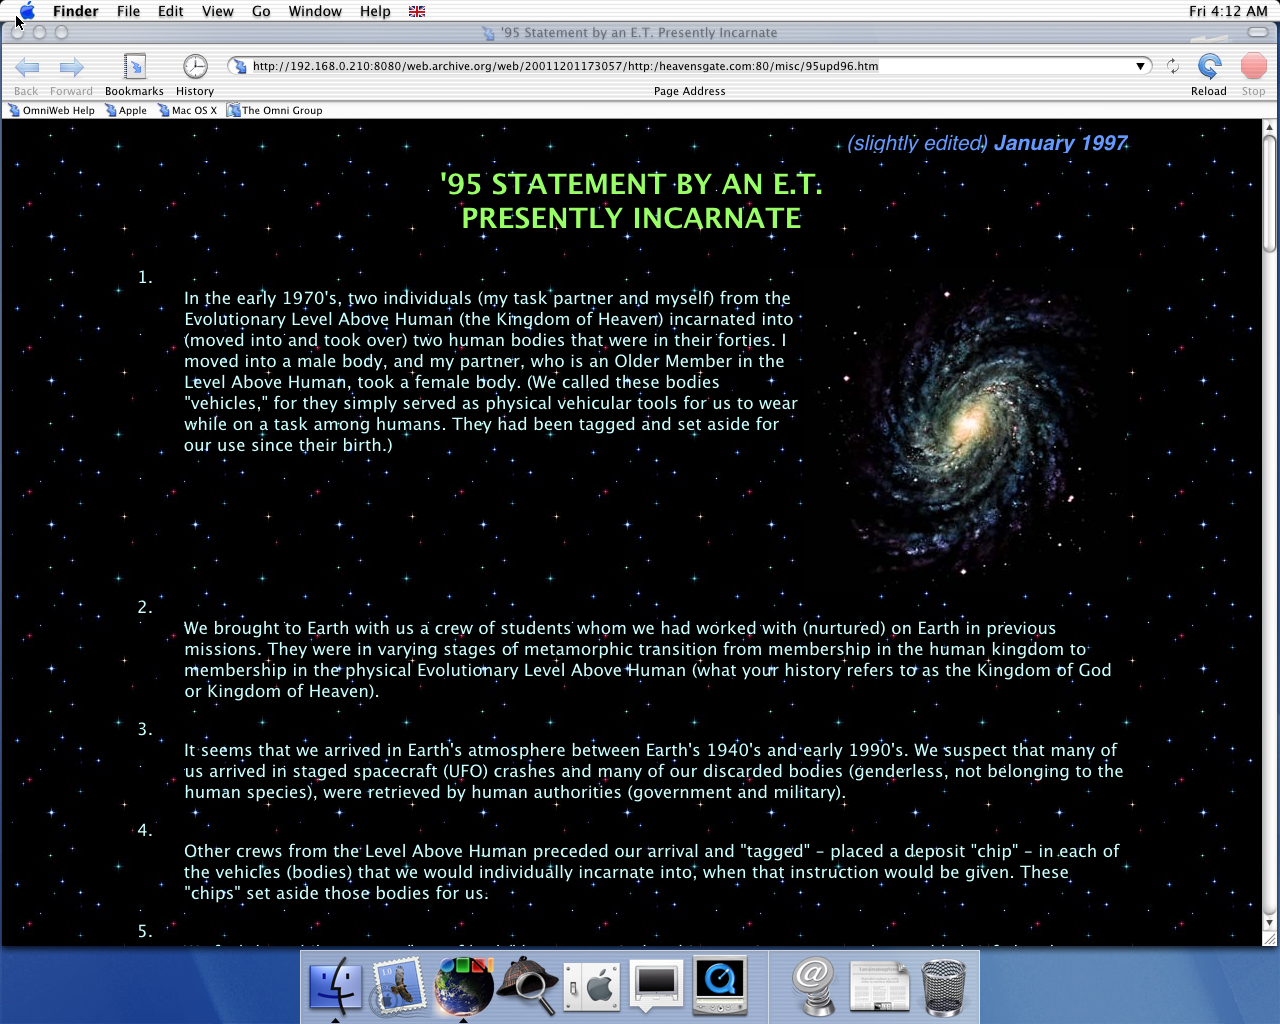 OS X 10.0 PPC with OmniWeb 4.0 displaying a page from Heaven's Gate archived at December 01, 2001 at 17:30:57